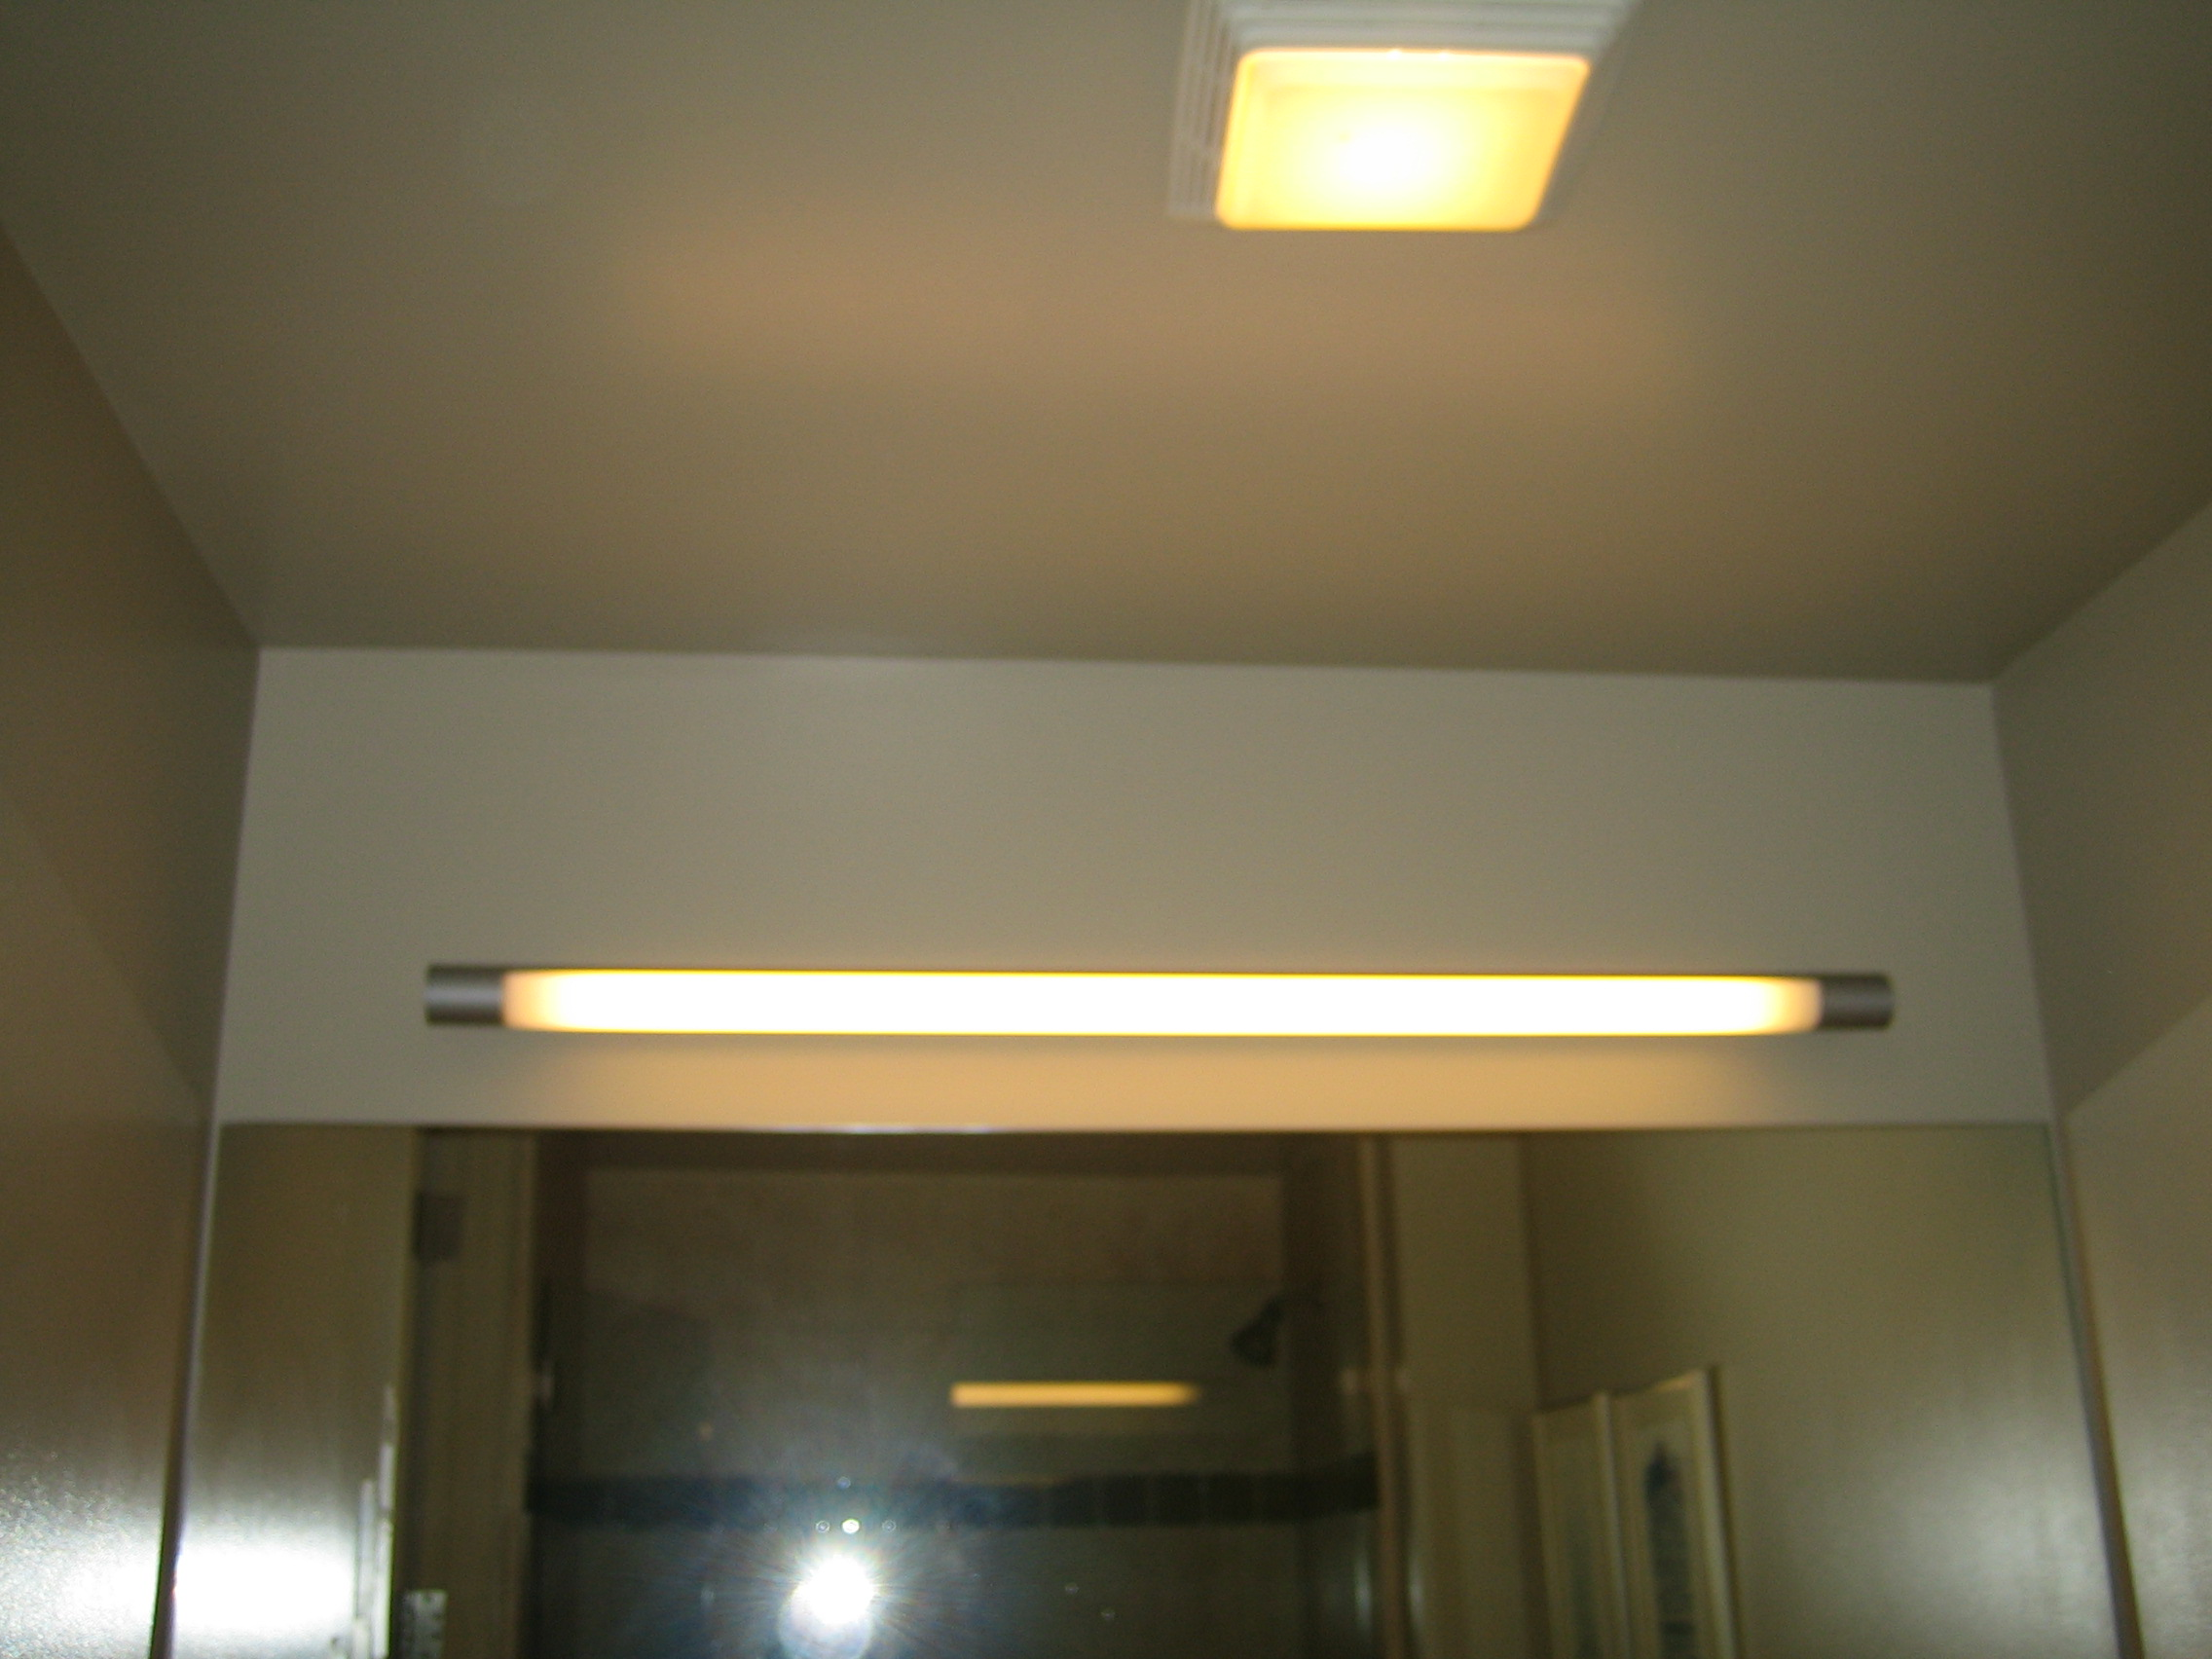 Bathroom Mirrors And Light Fixtures With Model Styles In India